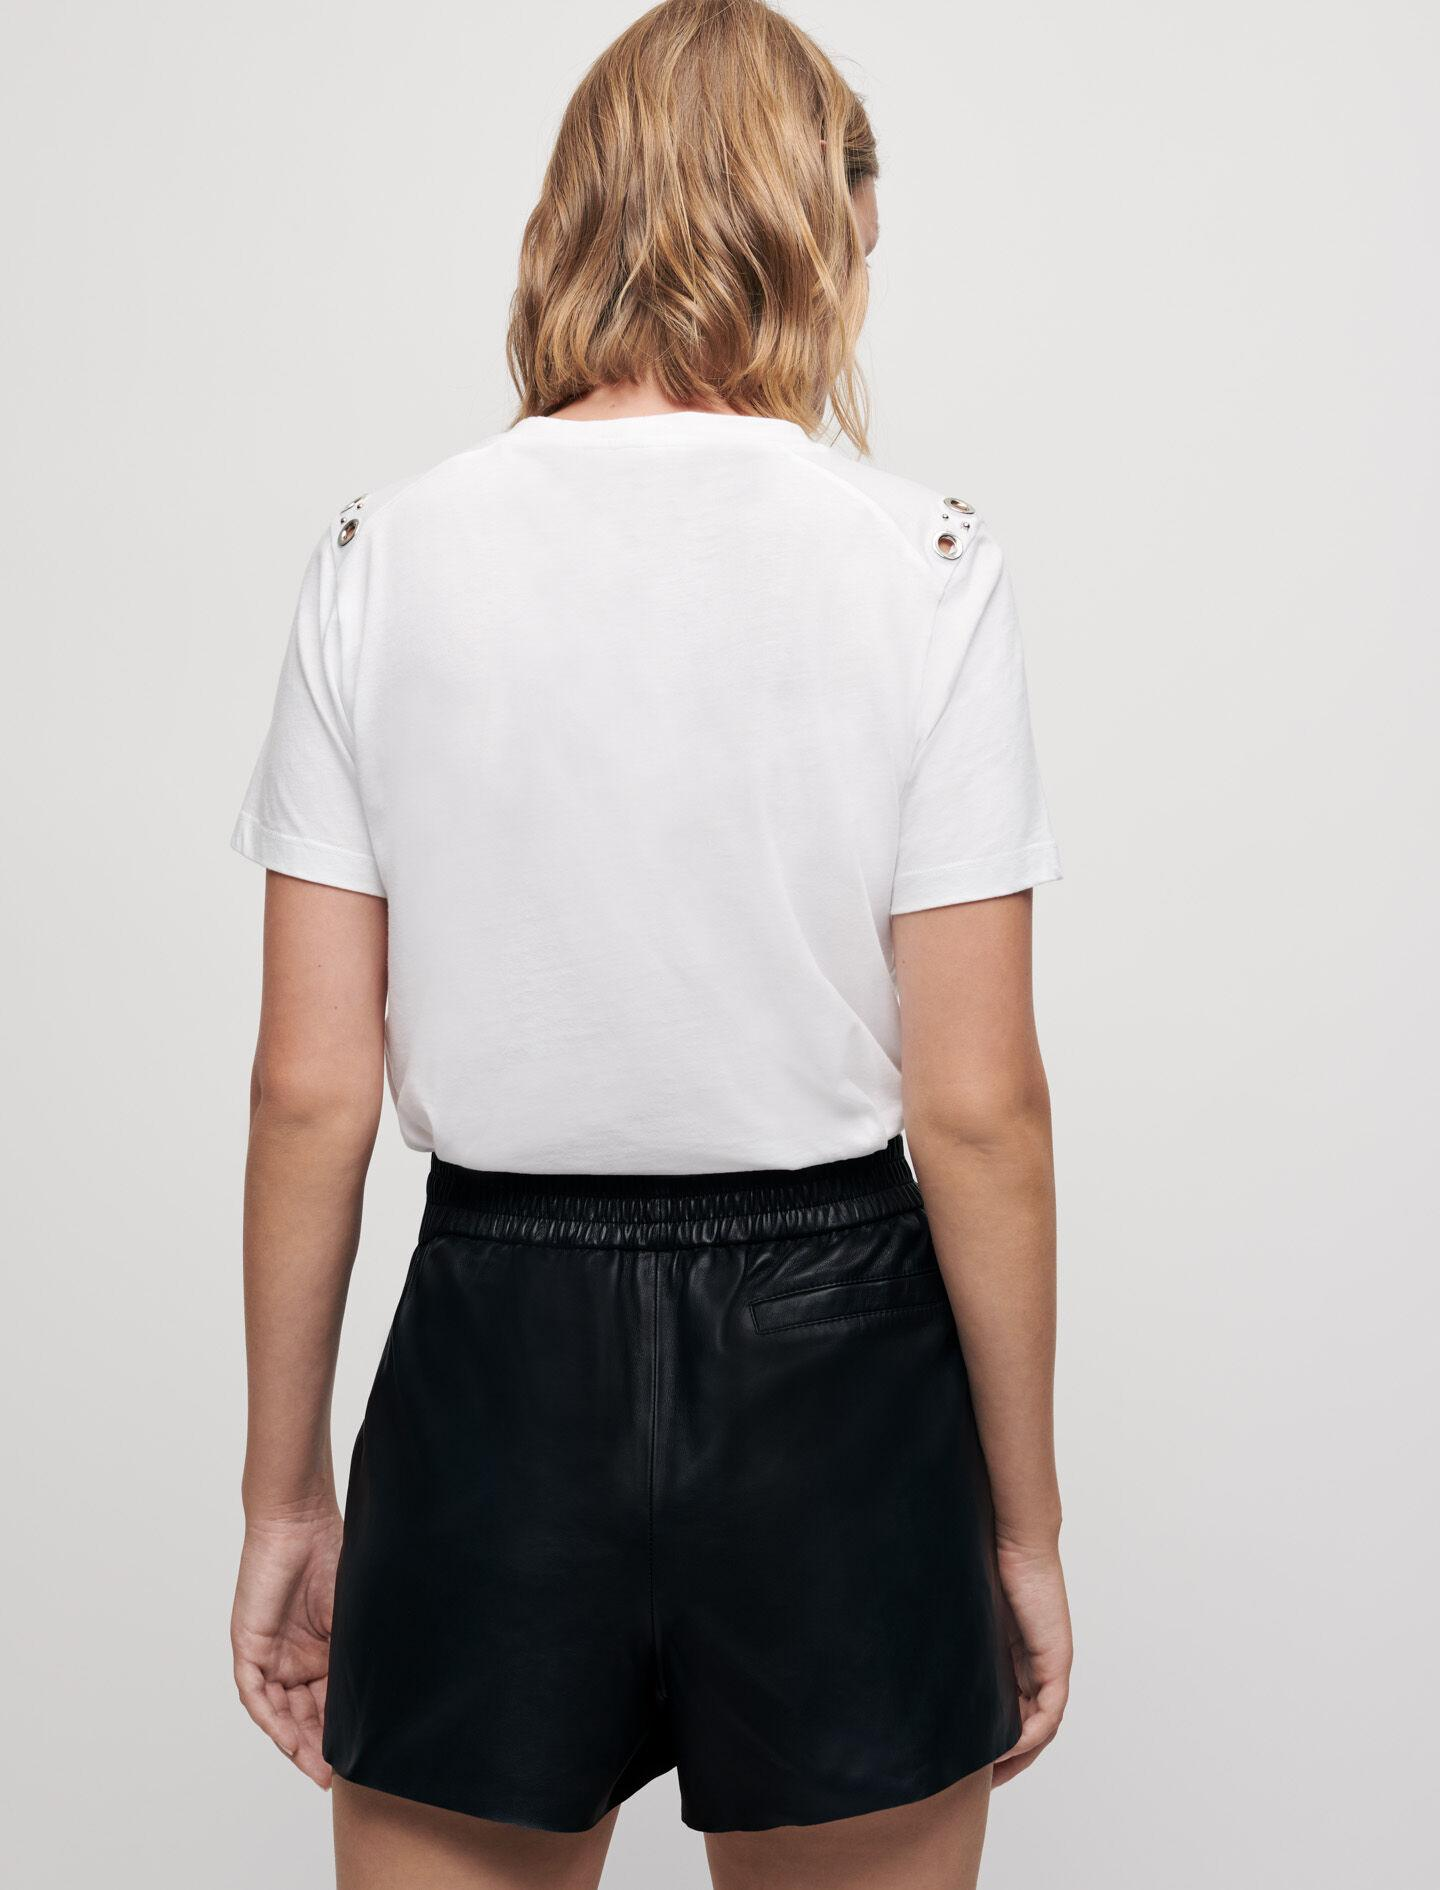 WHITE T-SHIRT WITH ROCK EYELETS 4